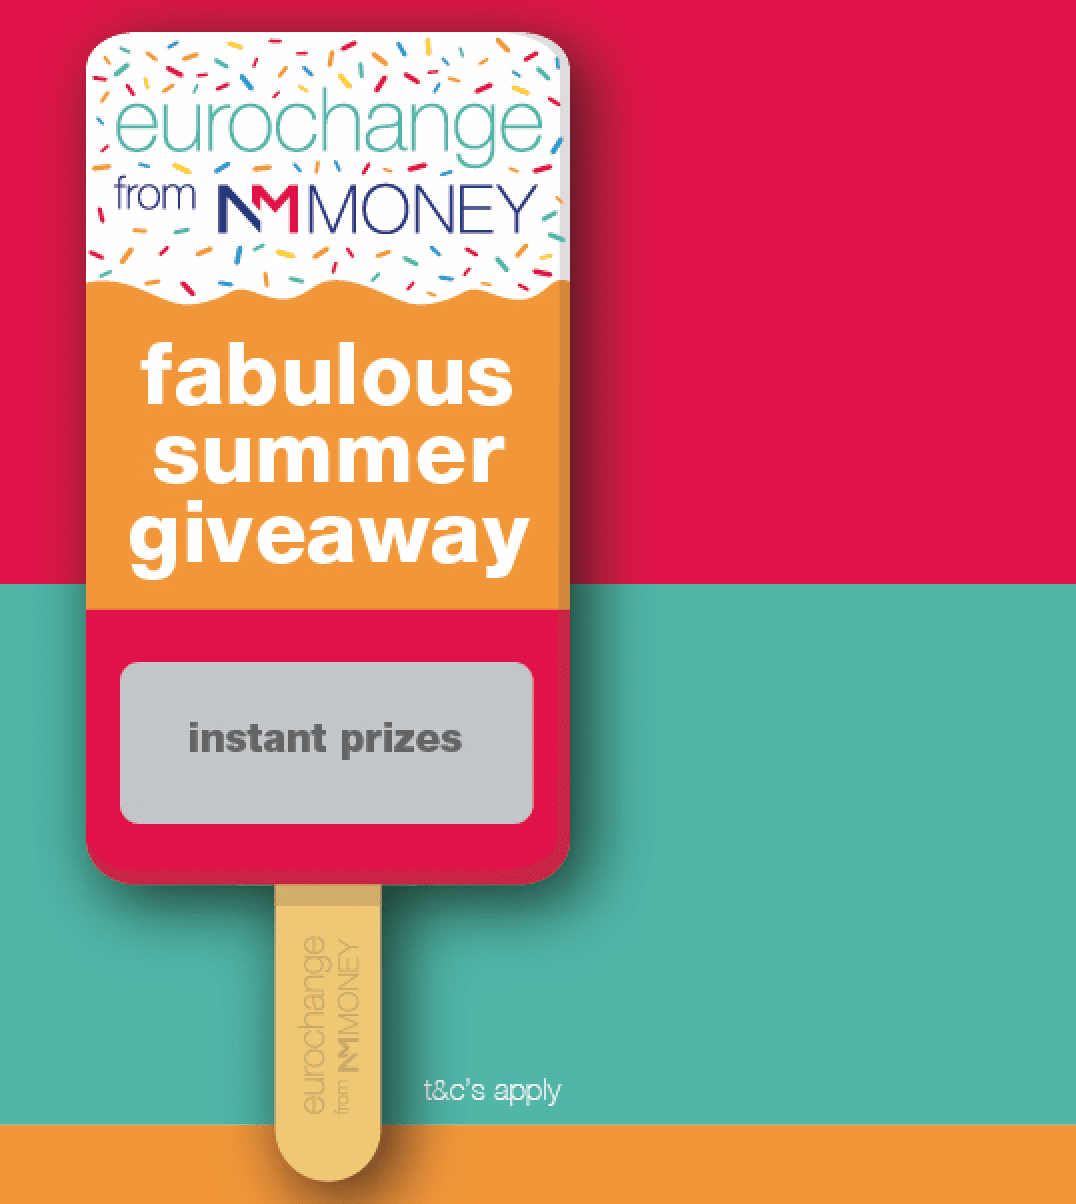 Eurochanges' Fabulous Summer Giveaway - Victoria Shopping Centre